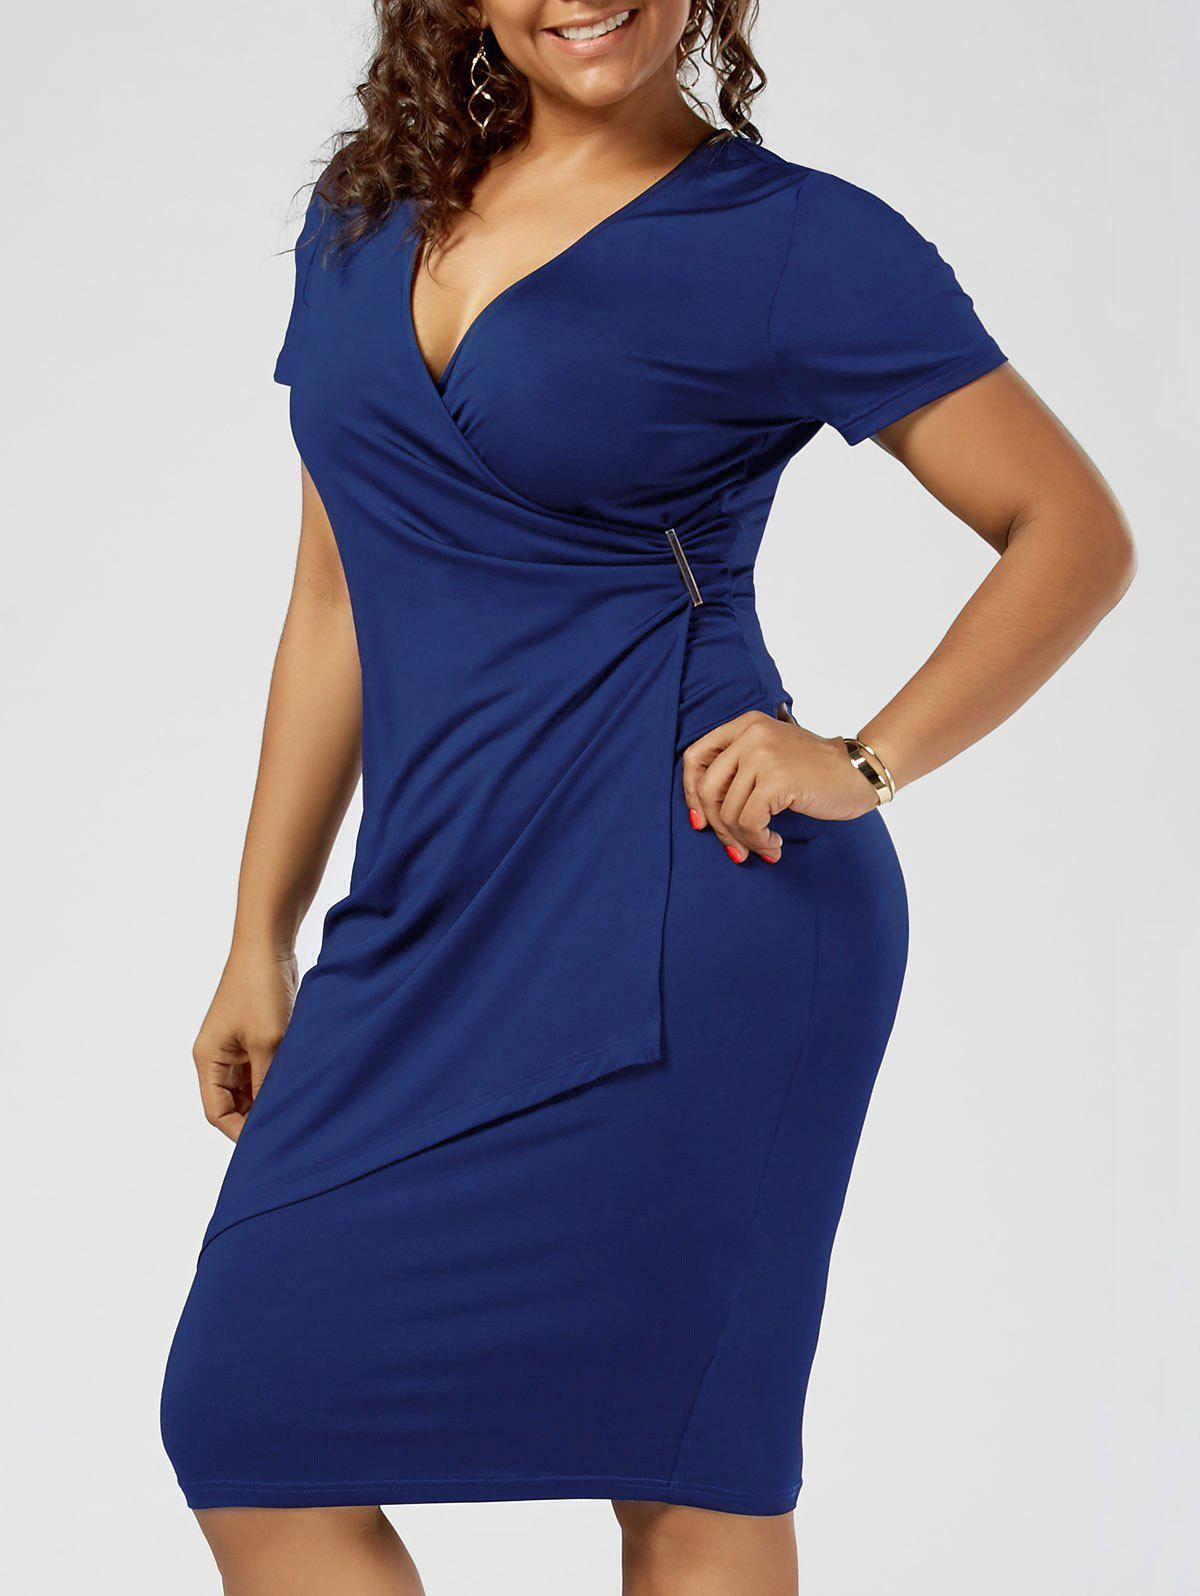 Plus Size Overlap Plain Tight Surplice V Neck Sheath DressWOMEN<br><br>Size: 2XL; Color: BLUE; Style: Brief; Material: Polyester,Spandex; Silhouette: Sheath; Dresses Length: Knee-Length; Neckline: V-Neck; Sleeve Length: Short Sleeves; Pattern Type: Solid Color; With Belt: No; Season: Summer; Weight: 0.3200kg; Package Contents: 1 x Dress;